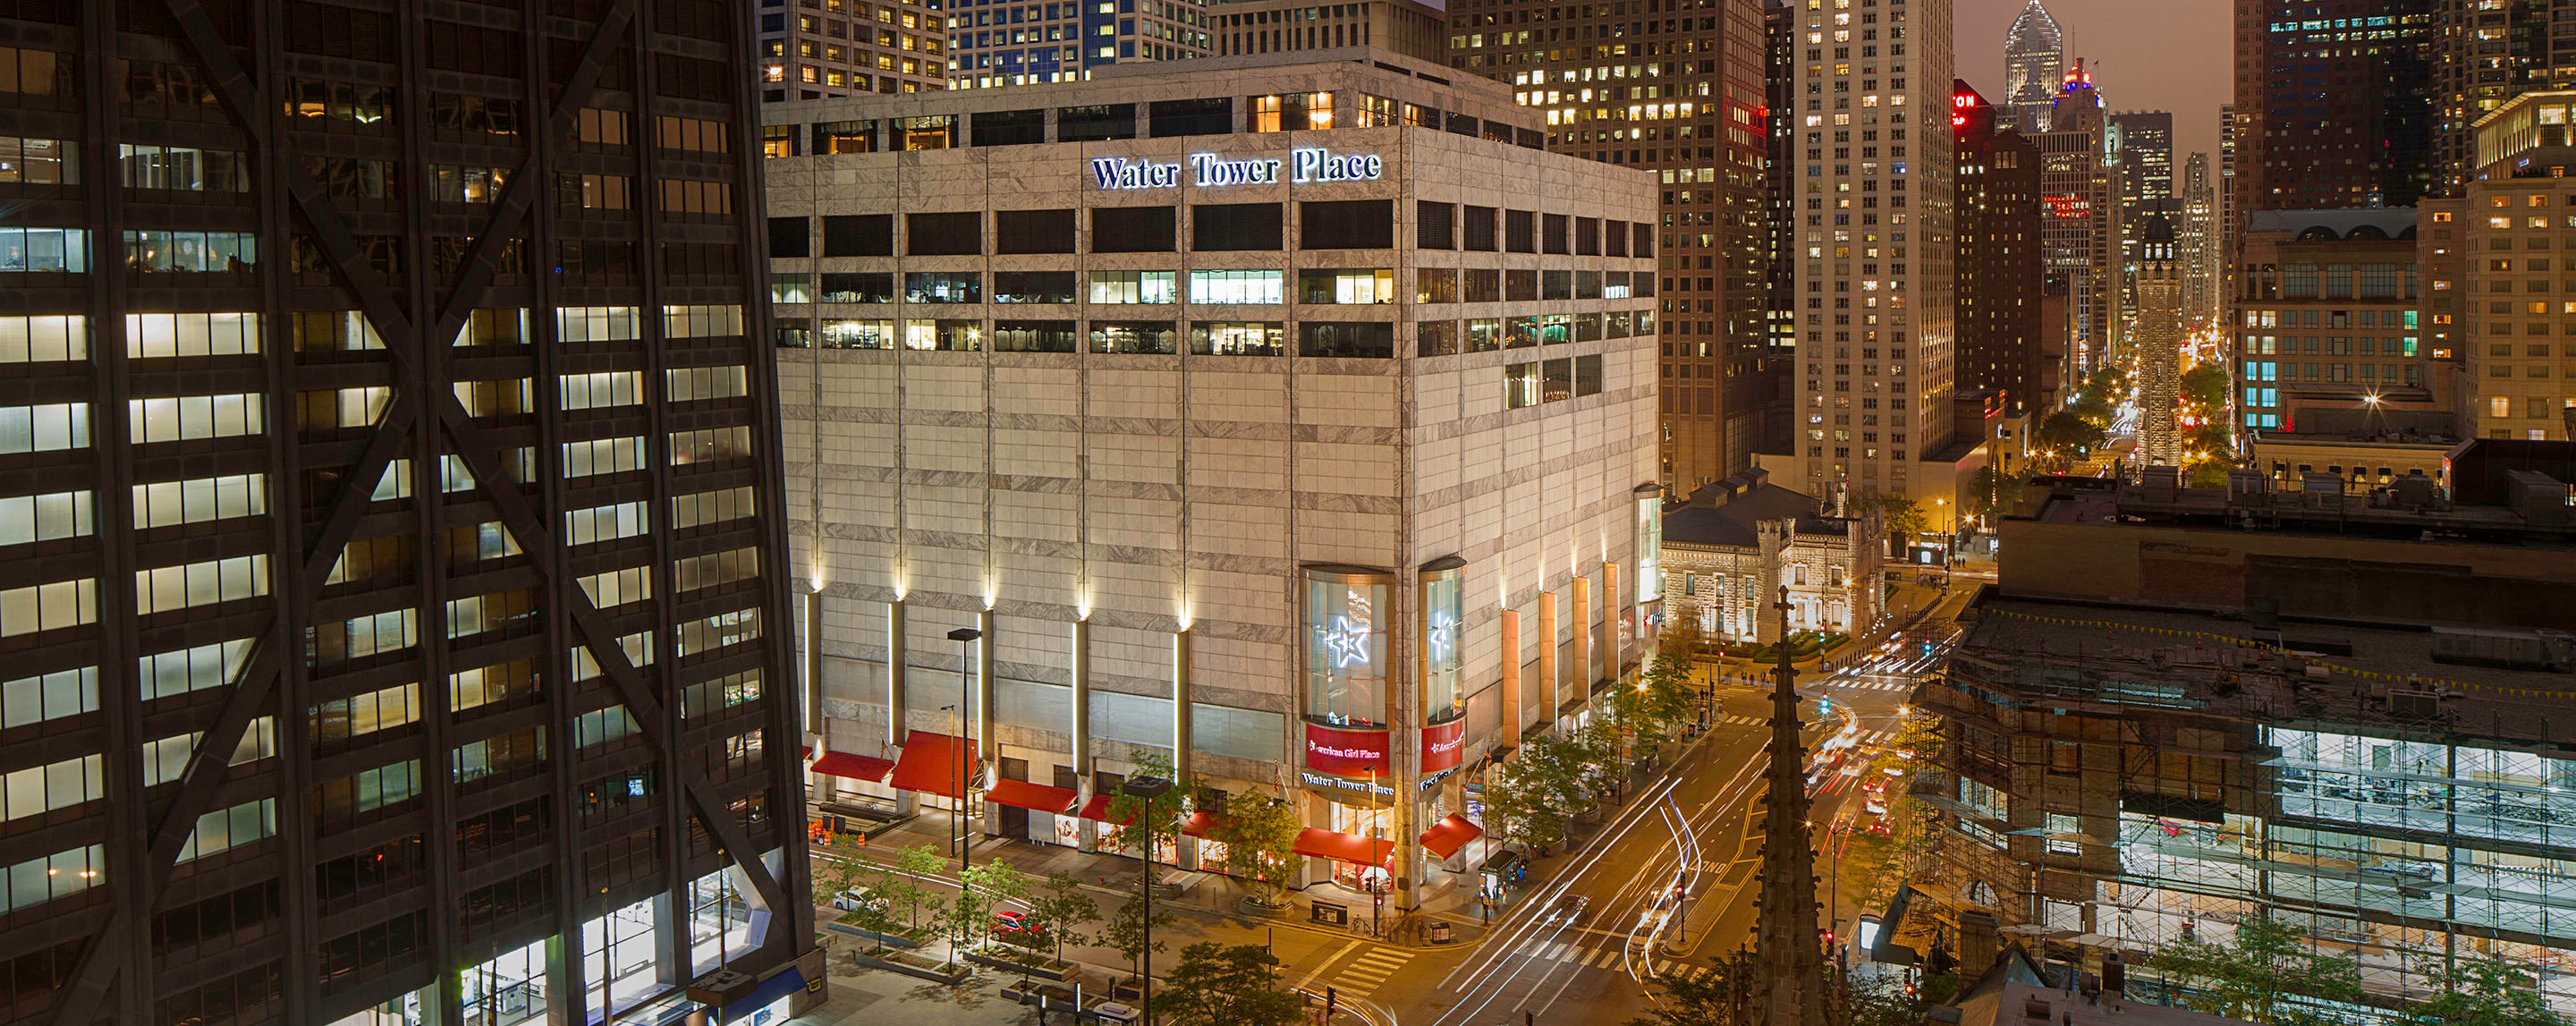 Water Tower Place is a Chicago landmark on the Magnificent Mile and renowned for its vast selection of over stores. Beyond shopping, the eight story mall also houses a number of restaurants and entertainment options, including a live theatre.8/10(1).